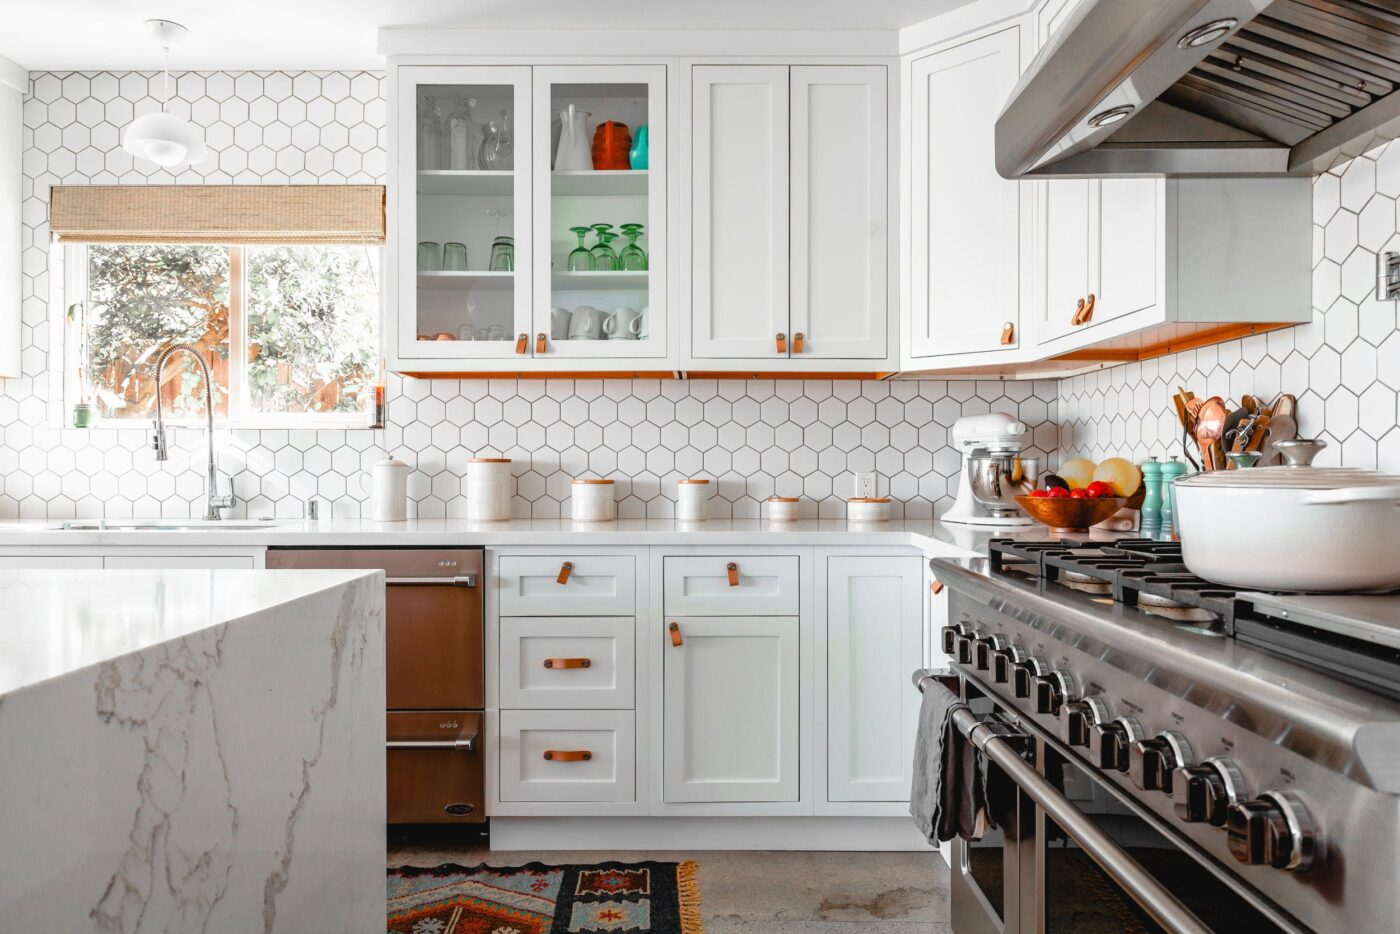 Image of american 3 in Design an American kitchen worthy of a movie set and feel like a star - Cosentino